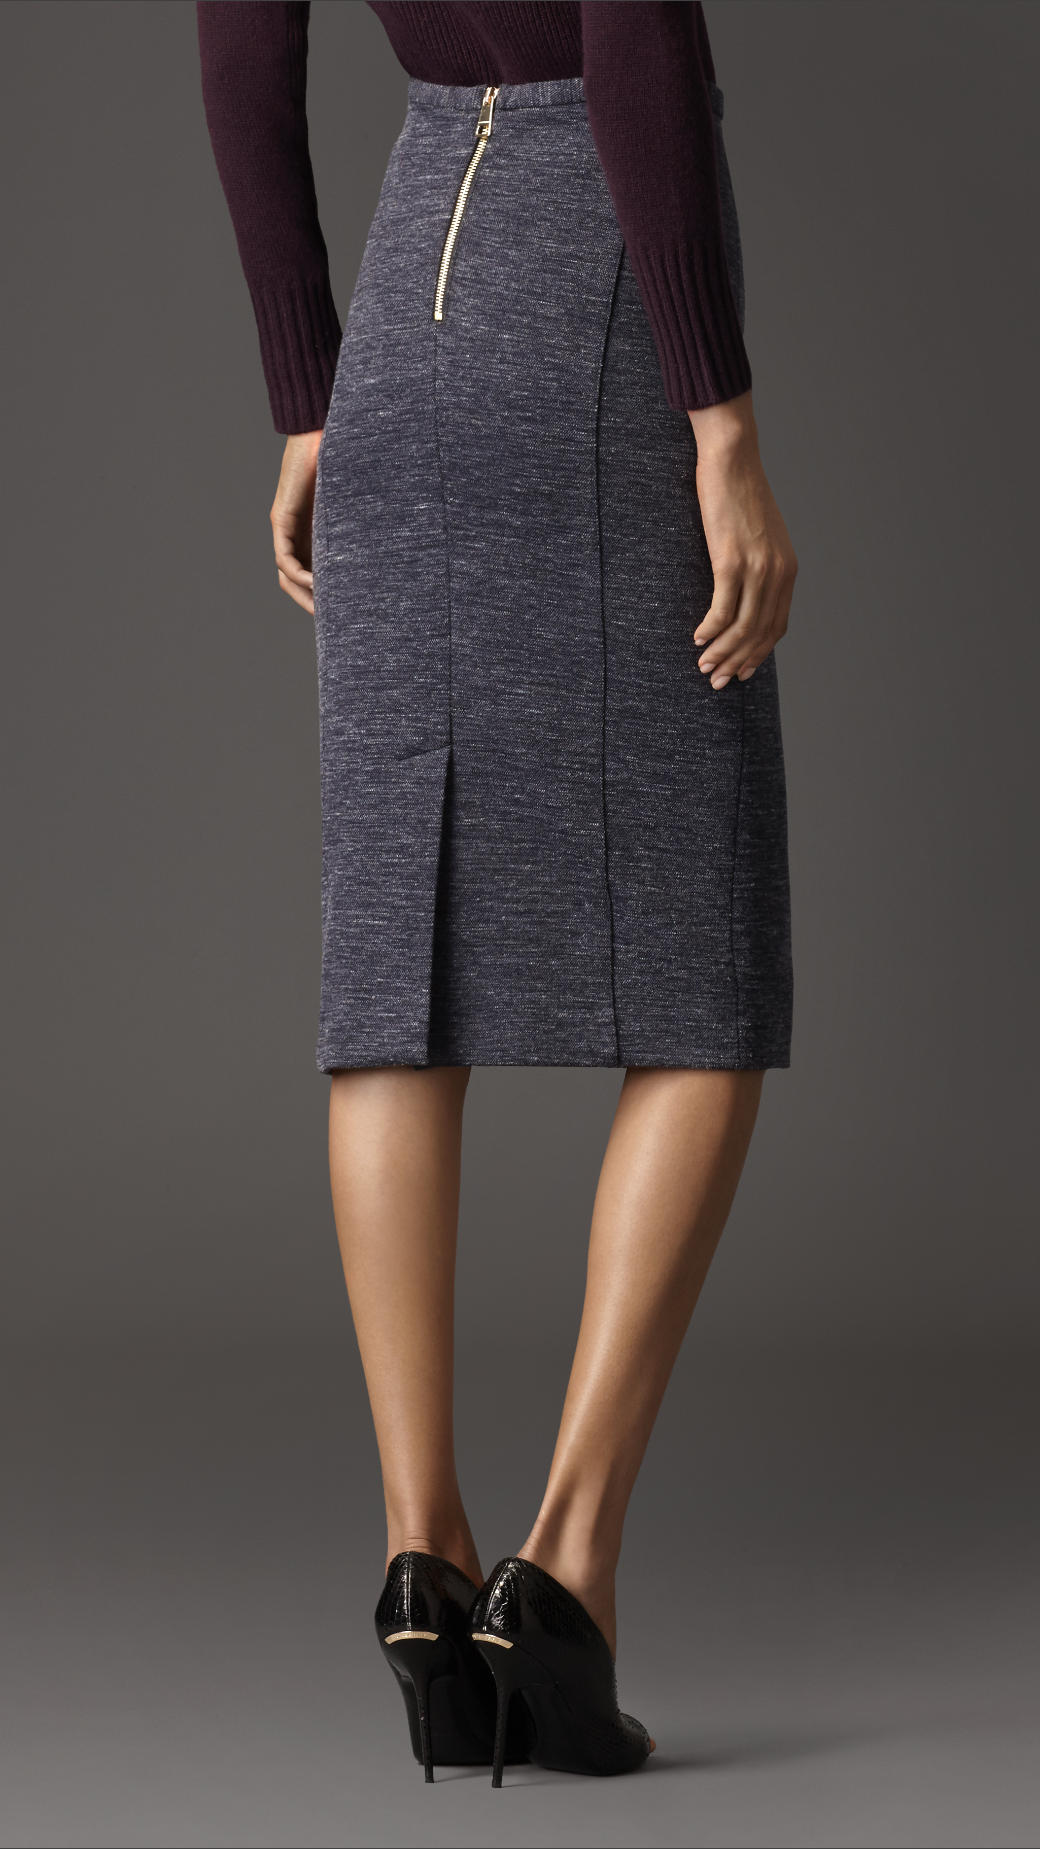 Burberry Wool Melange Pencil Skirt in Blue | Lyst